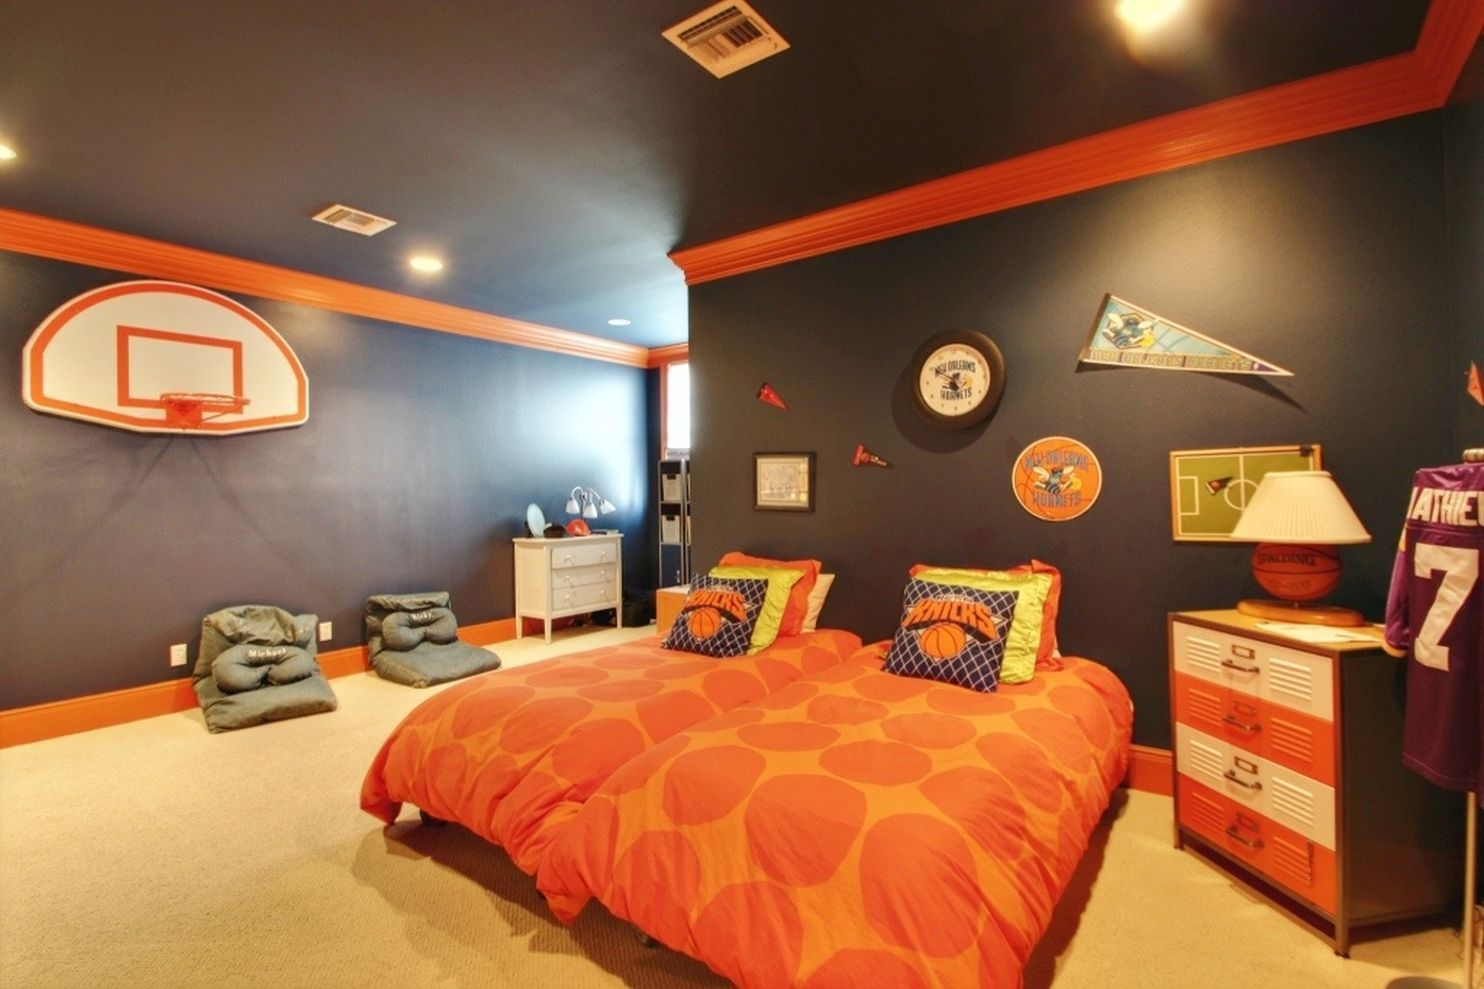 Delightful Inspiring Bedroom Design Ideas For Boy Who Loves Basketball 69